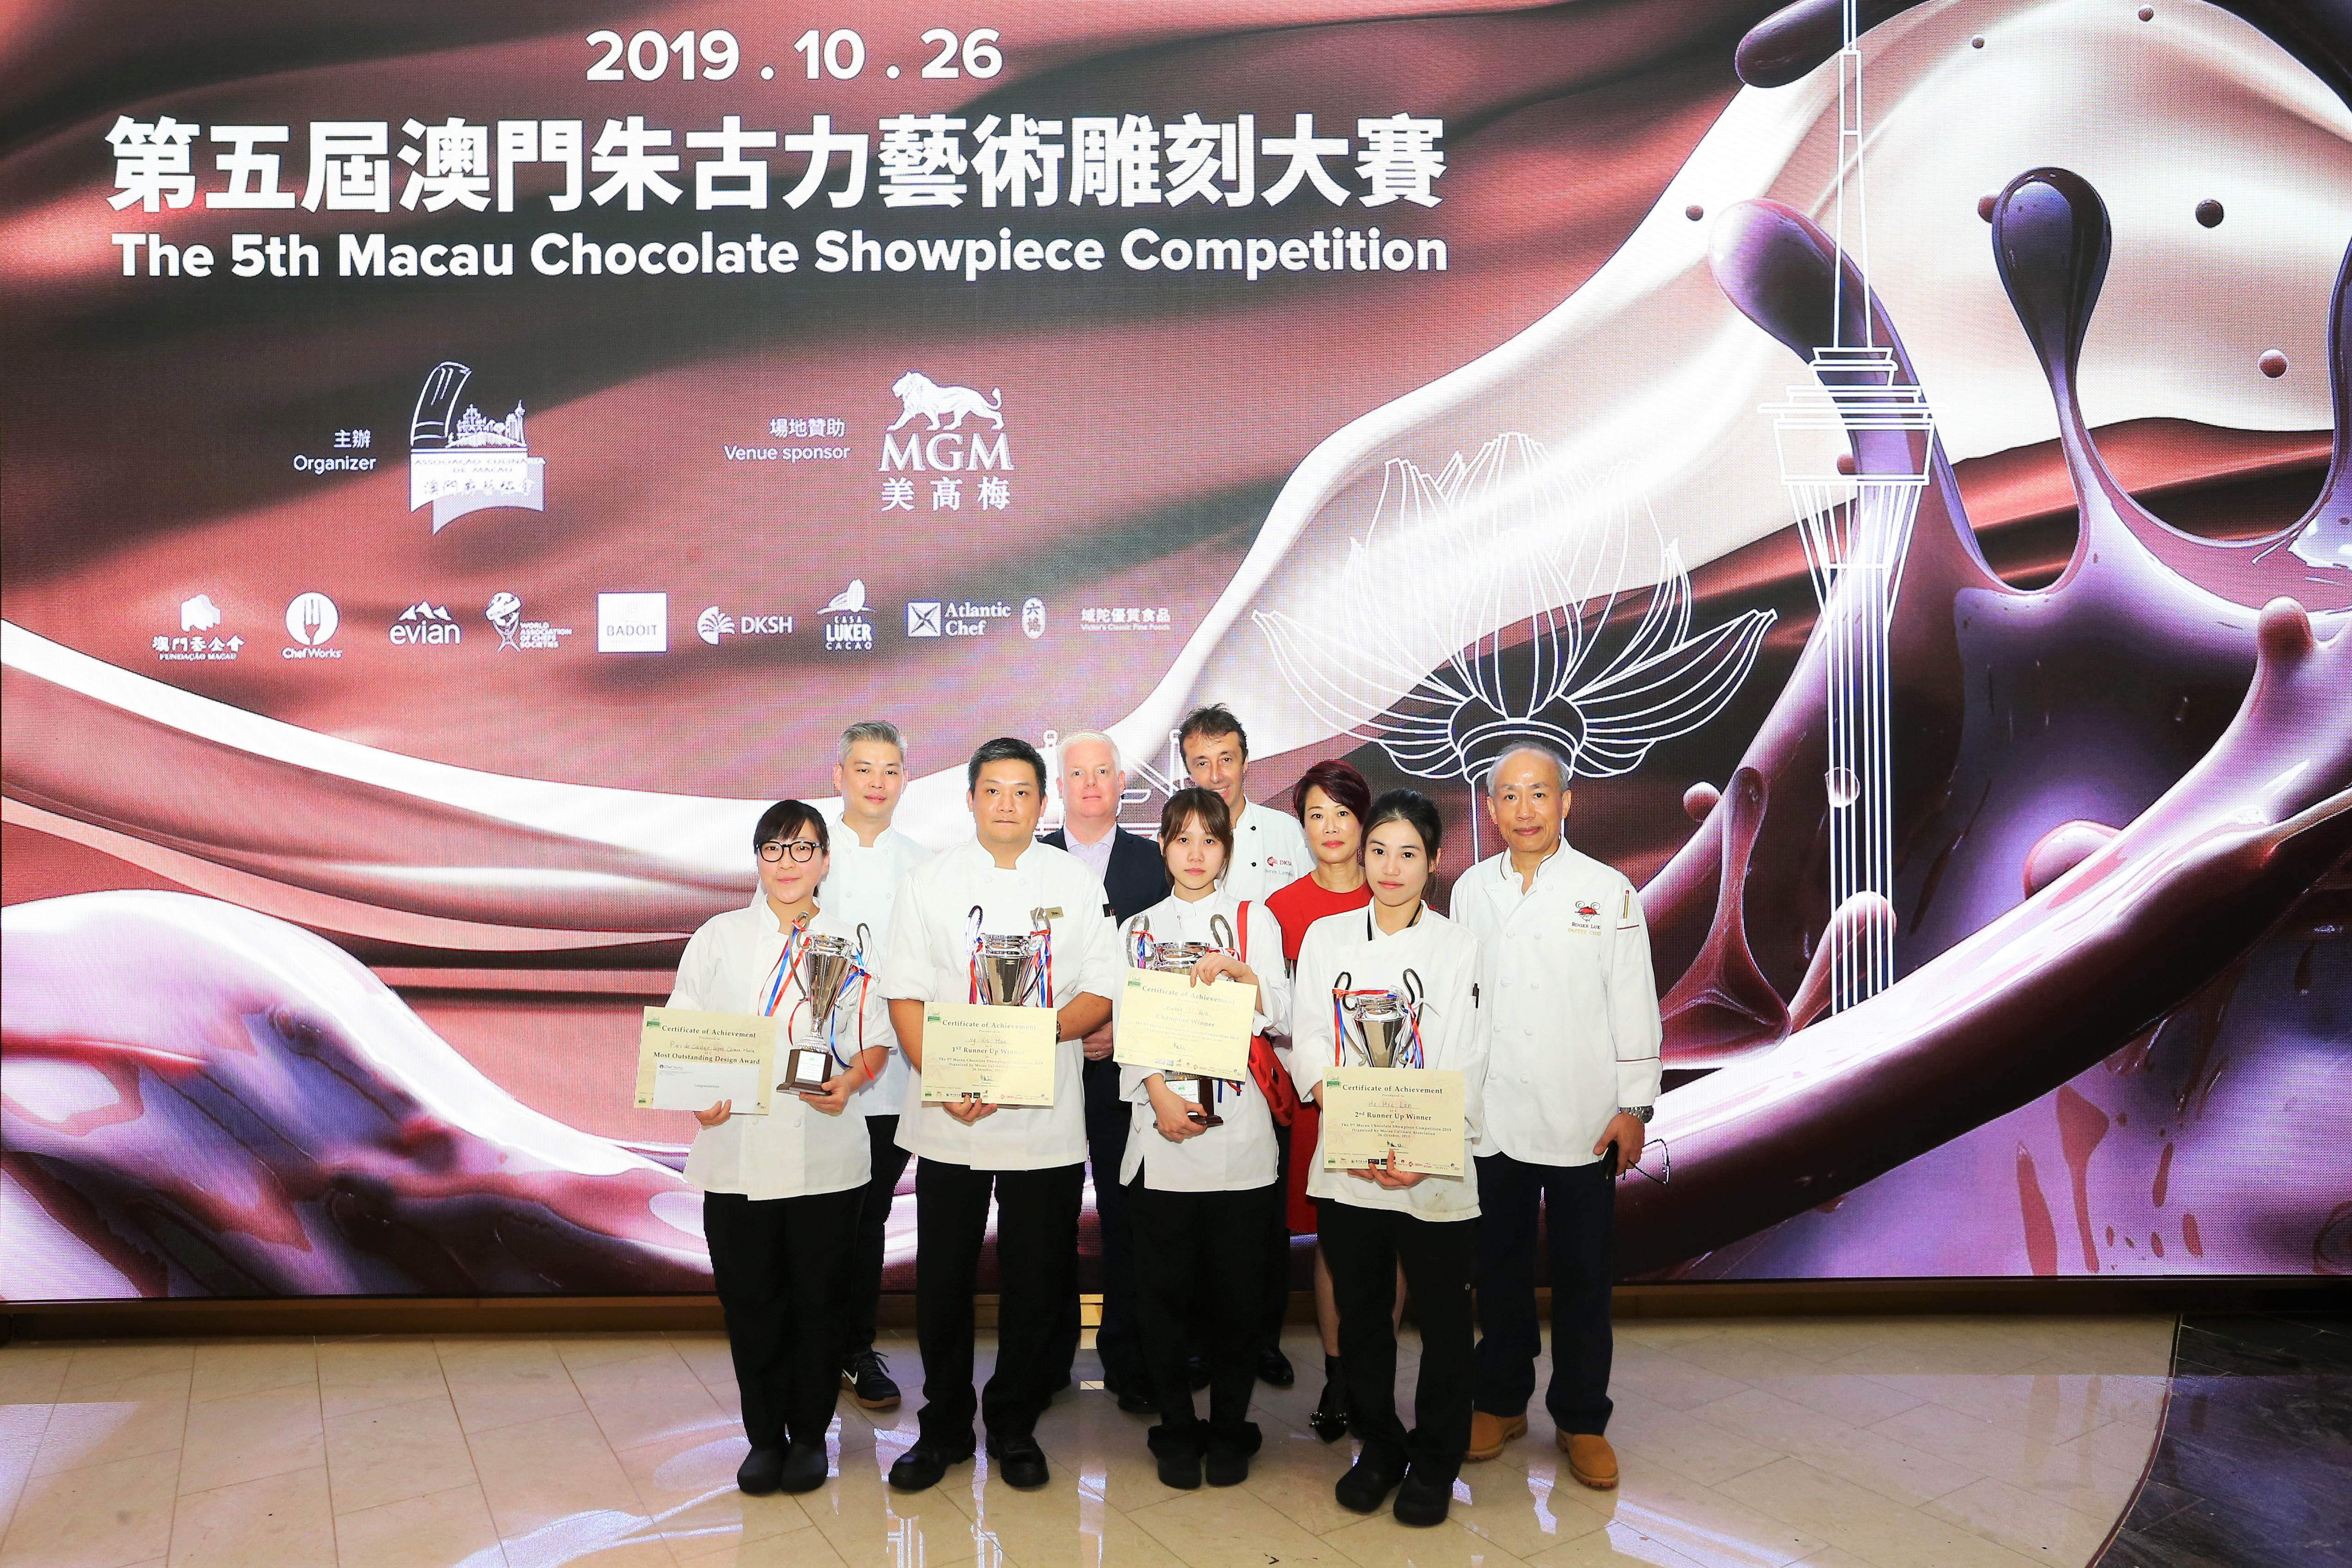 DKSH sponsors 5th Macau Chocolate Showpiece Competition with CasaLuker's finest cocoa